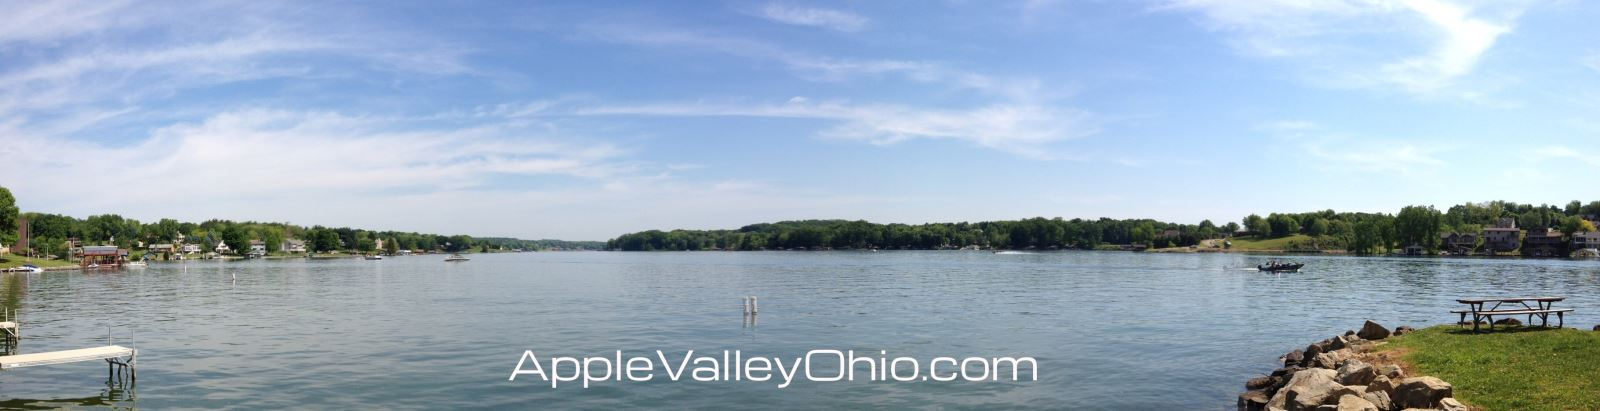 Panoramic Boating Photo taken on the Apple Valley Lake